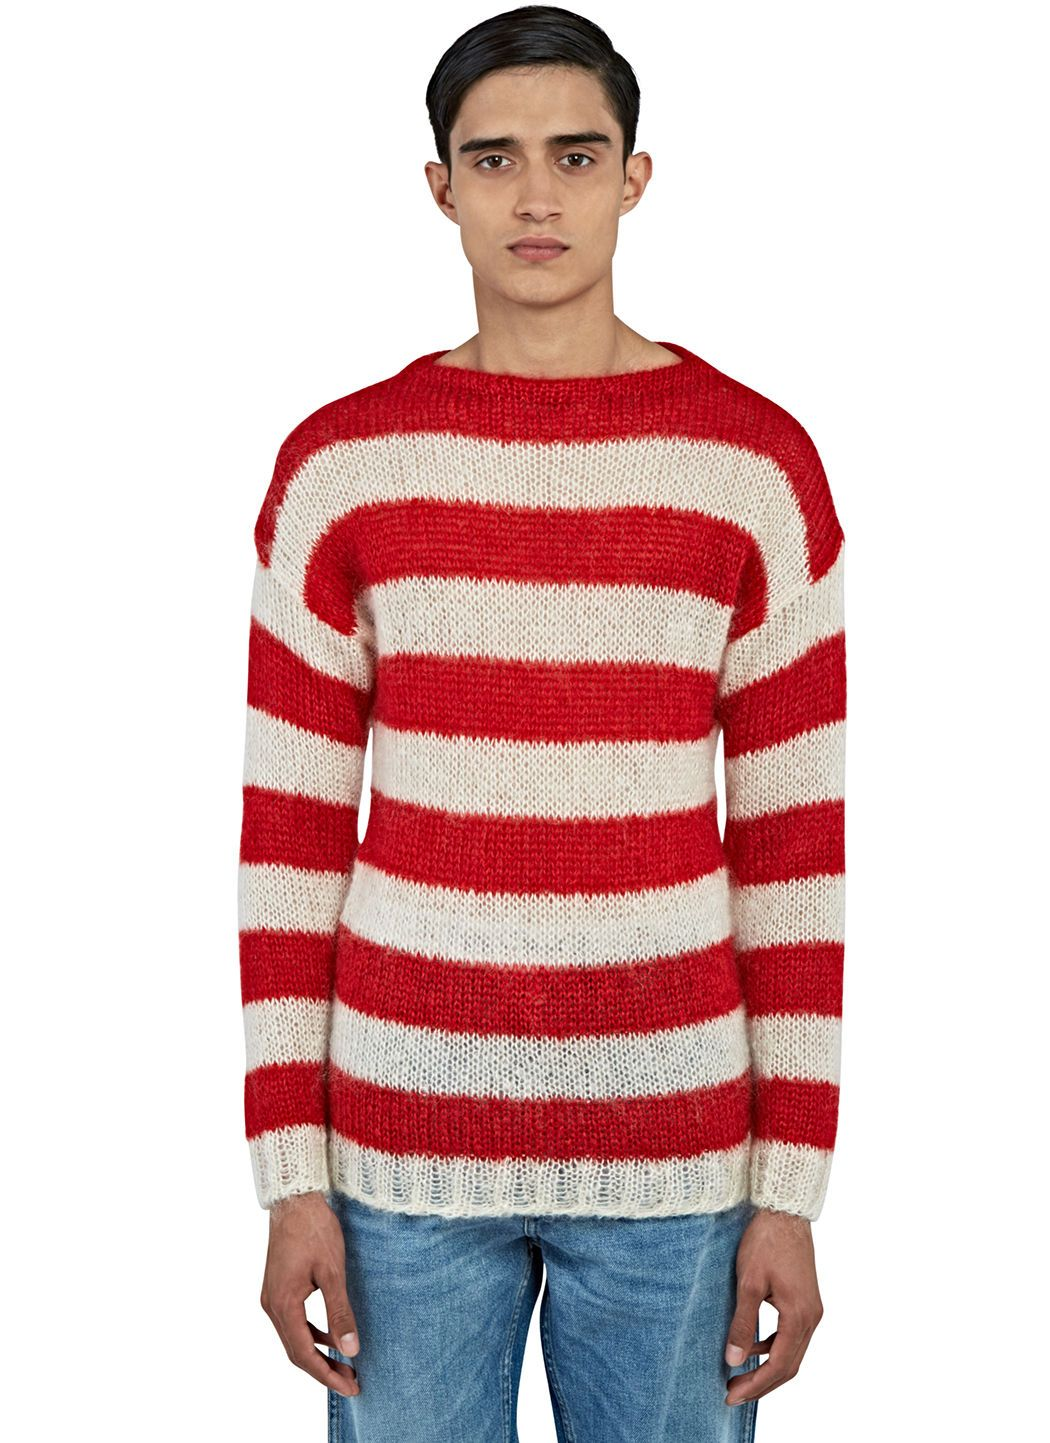 abb87af2789 GUCCI Men S Striped Mohair Knit Sweater In Red And White.  gucci  cloth